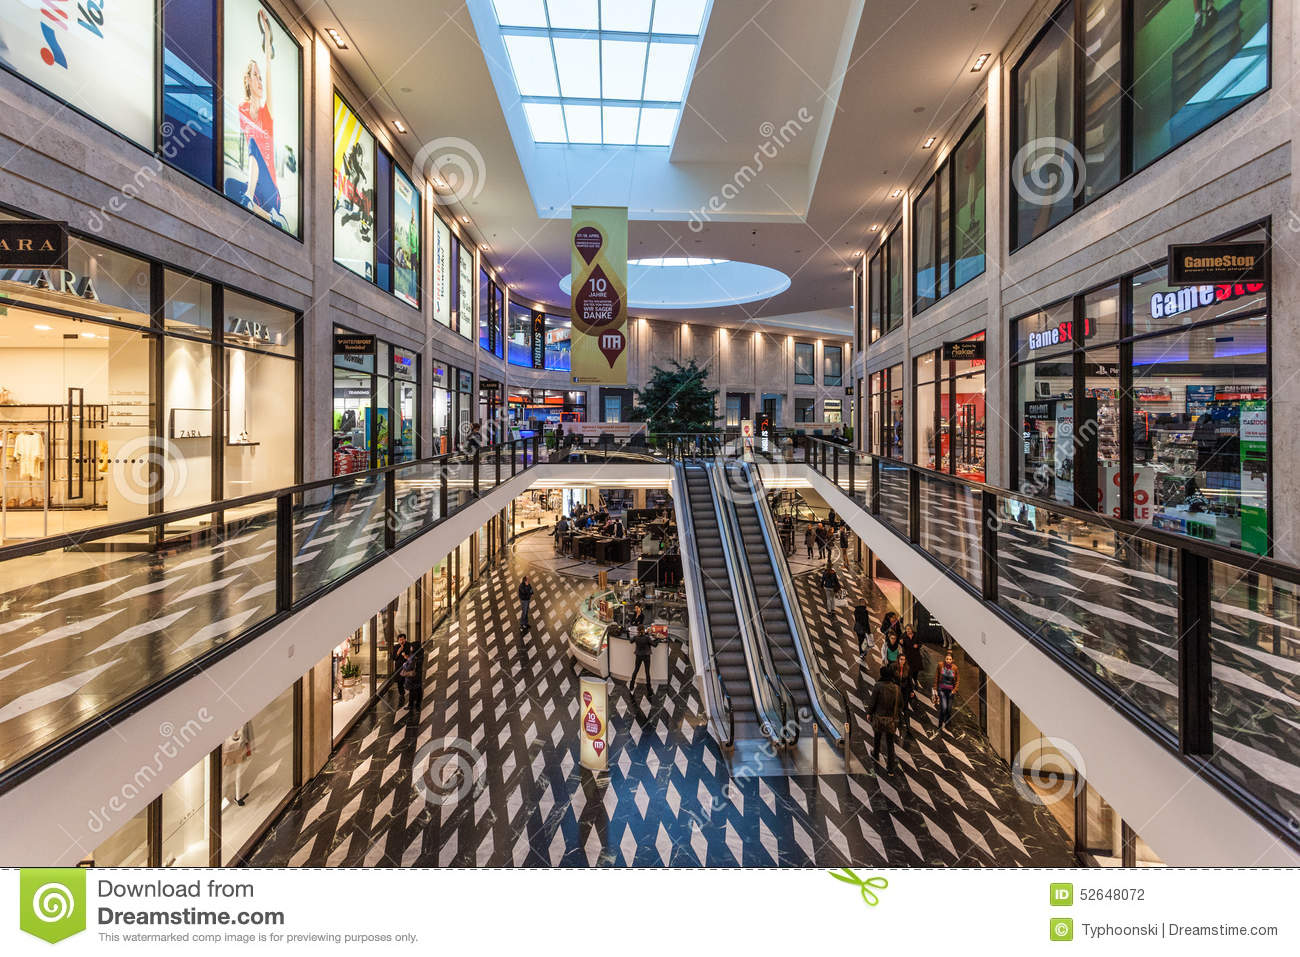 Shopping Center In Munster Germany Editorial Photography